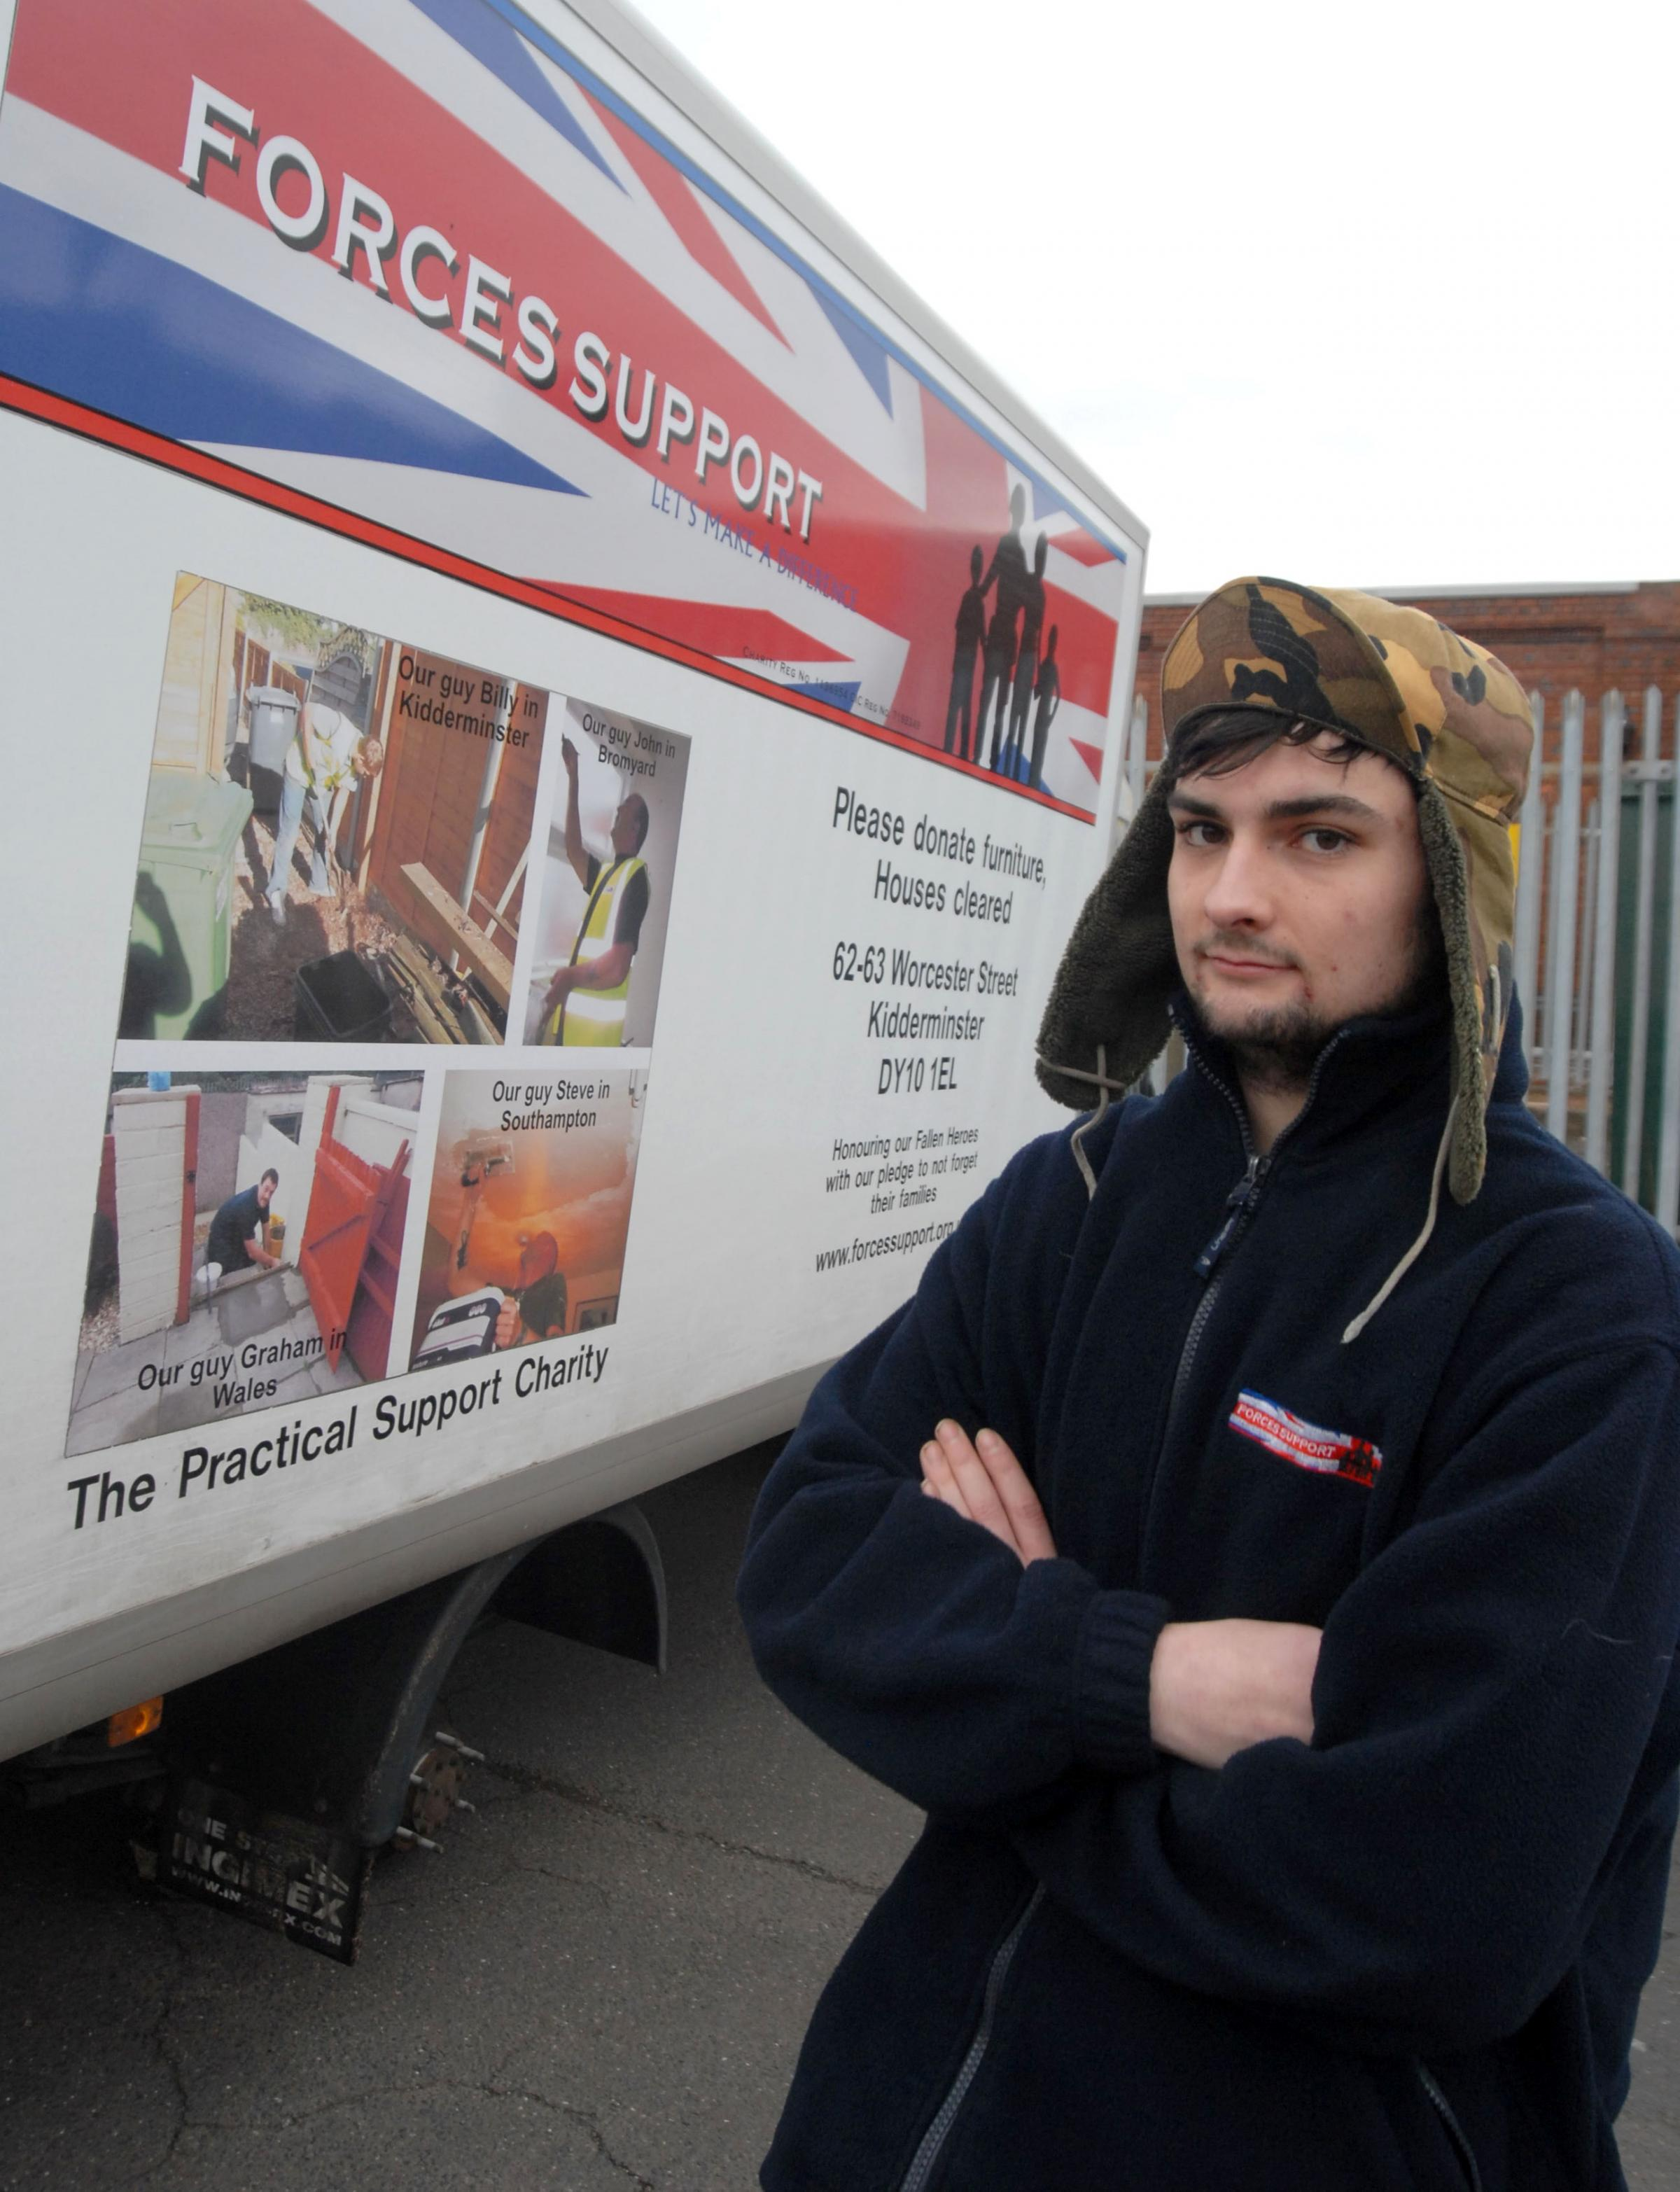 Off the road: Richard Howard, a driver's mate for the charity, with the van that had its wheels and rear lights stolen.